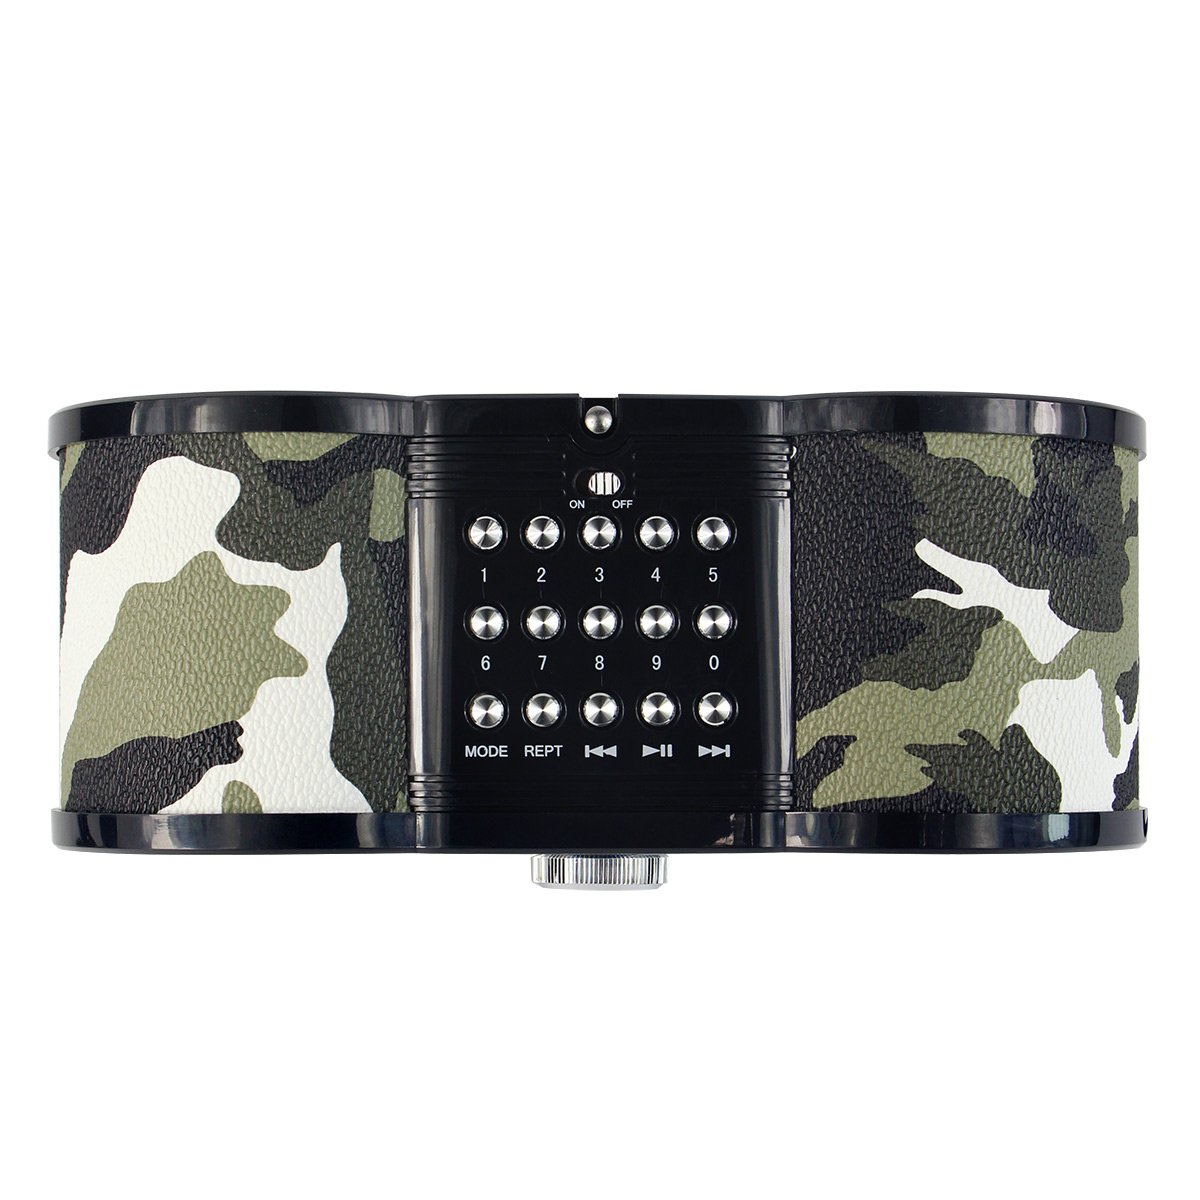 TIVDIO V-113 Portable Transistor FM Stereo Radio Support Mp3 Music Player Speaker Micro SD IF Card Aux Line In Remote(Camouflage) by TIVDIO (Image #5)